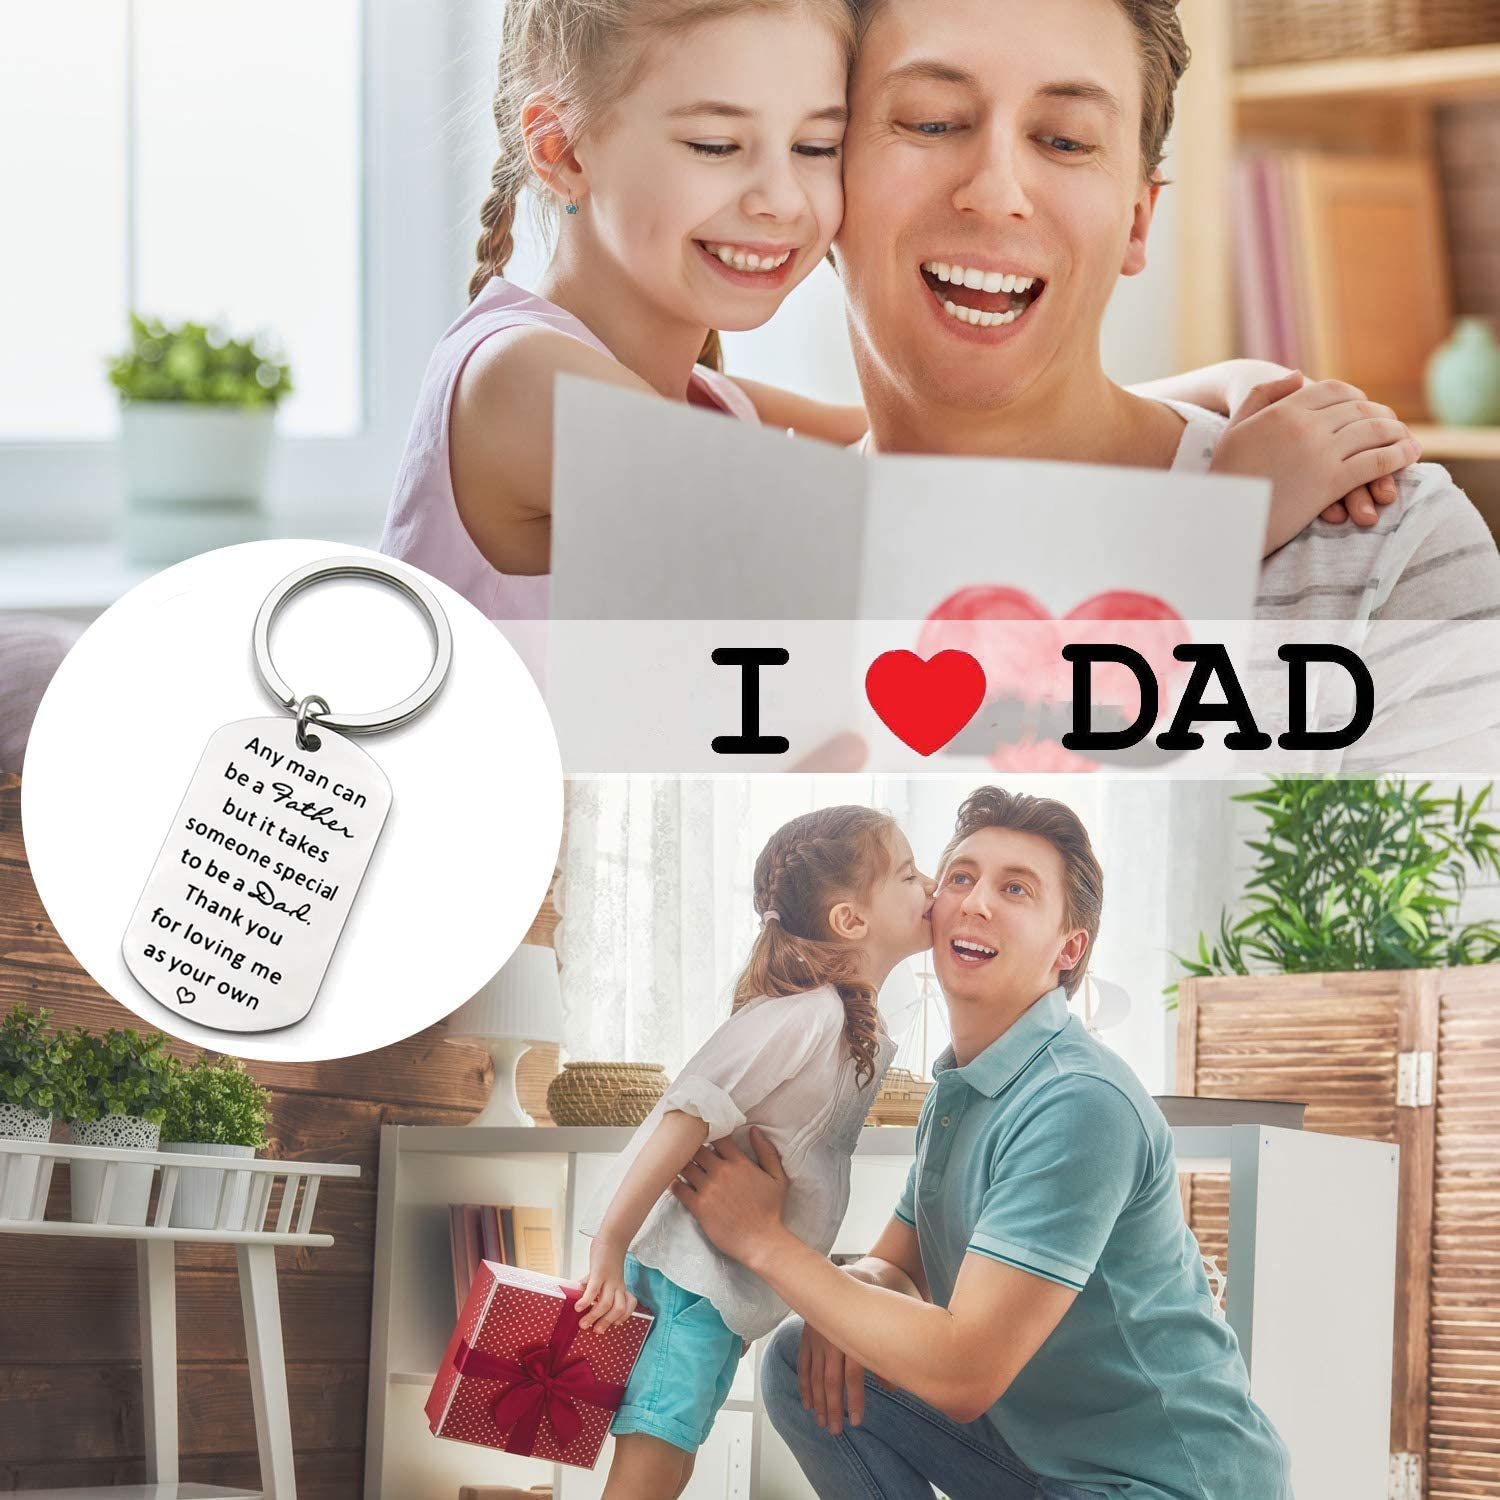 Personalized Stainless Steel Key Ring Dog Tag for Men New Father in Law from Daughter Son Thanksgiving Birthday Wedding Christmas Valentines Day Presents Step Dad Father/'s Day Gifts Keychain